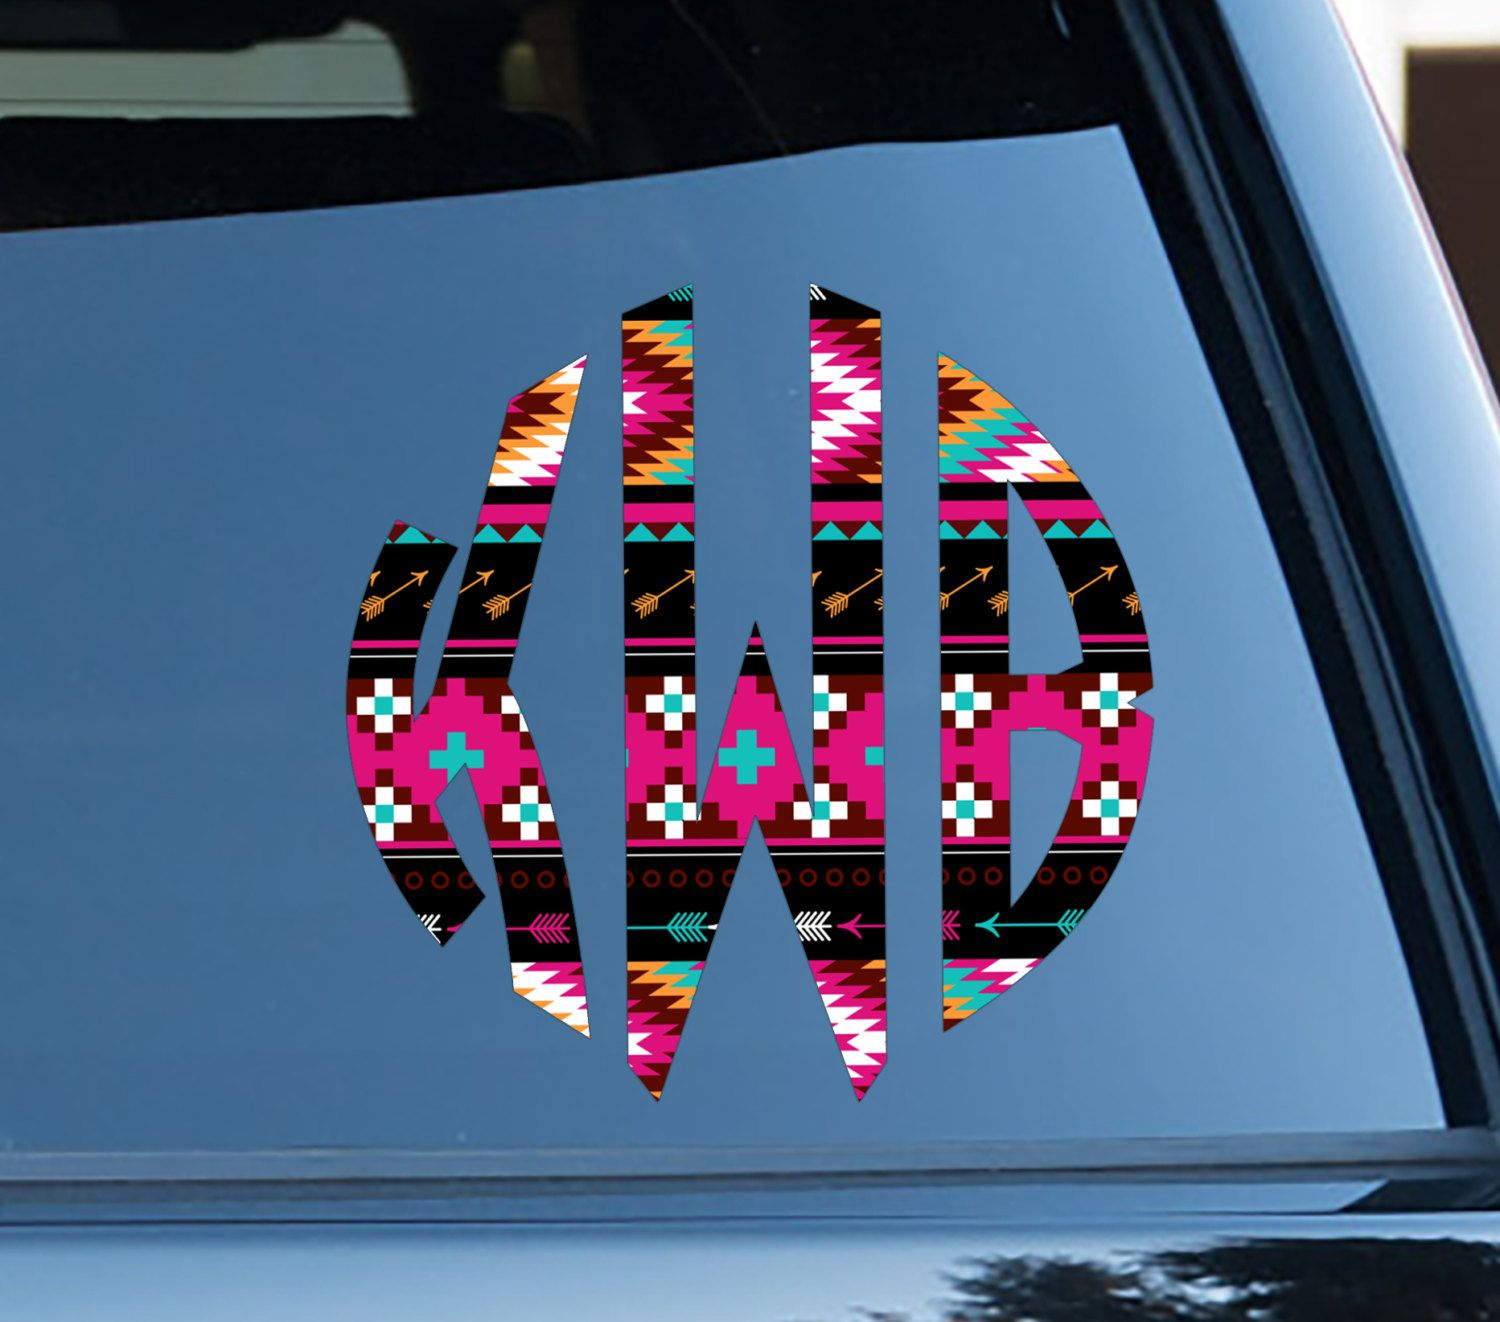 Christmas Gifts For Friends Aztec Car Decal Tribal Car Stickers Car Decor Cute Car Accessories Car Decals Monogrammed Cute Car Decals Car Accessories Cute Cars [ 1322 x 1500 Pixel ]